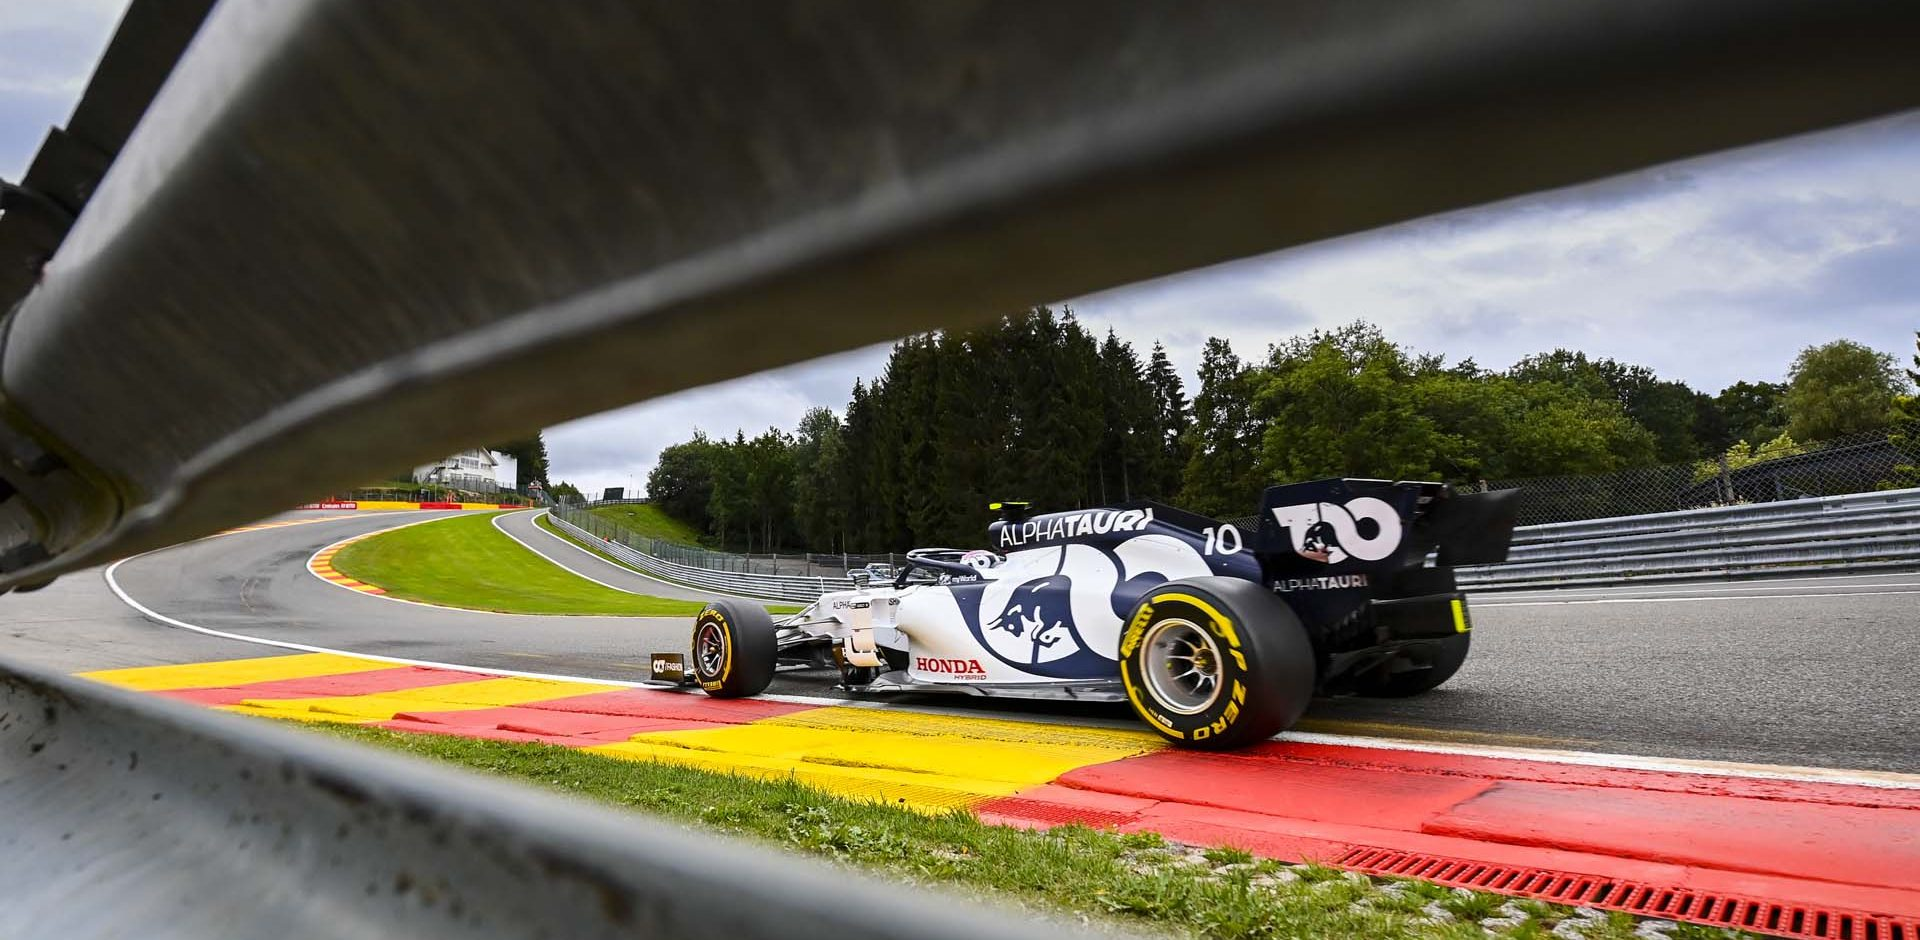 SPA-FRANCORCHAMPS, BELGIUM - AUGUST 28: Pierre Gasly, AlphaTauri AT01 during the Belgian GP at Spa-Francorchamps on Friday August 28, 2020 in Spa, Belgium. (Photo by Mark Sutton / LAT Images)